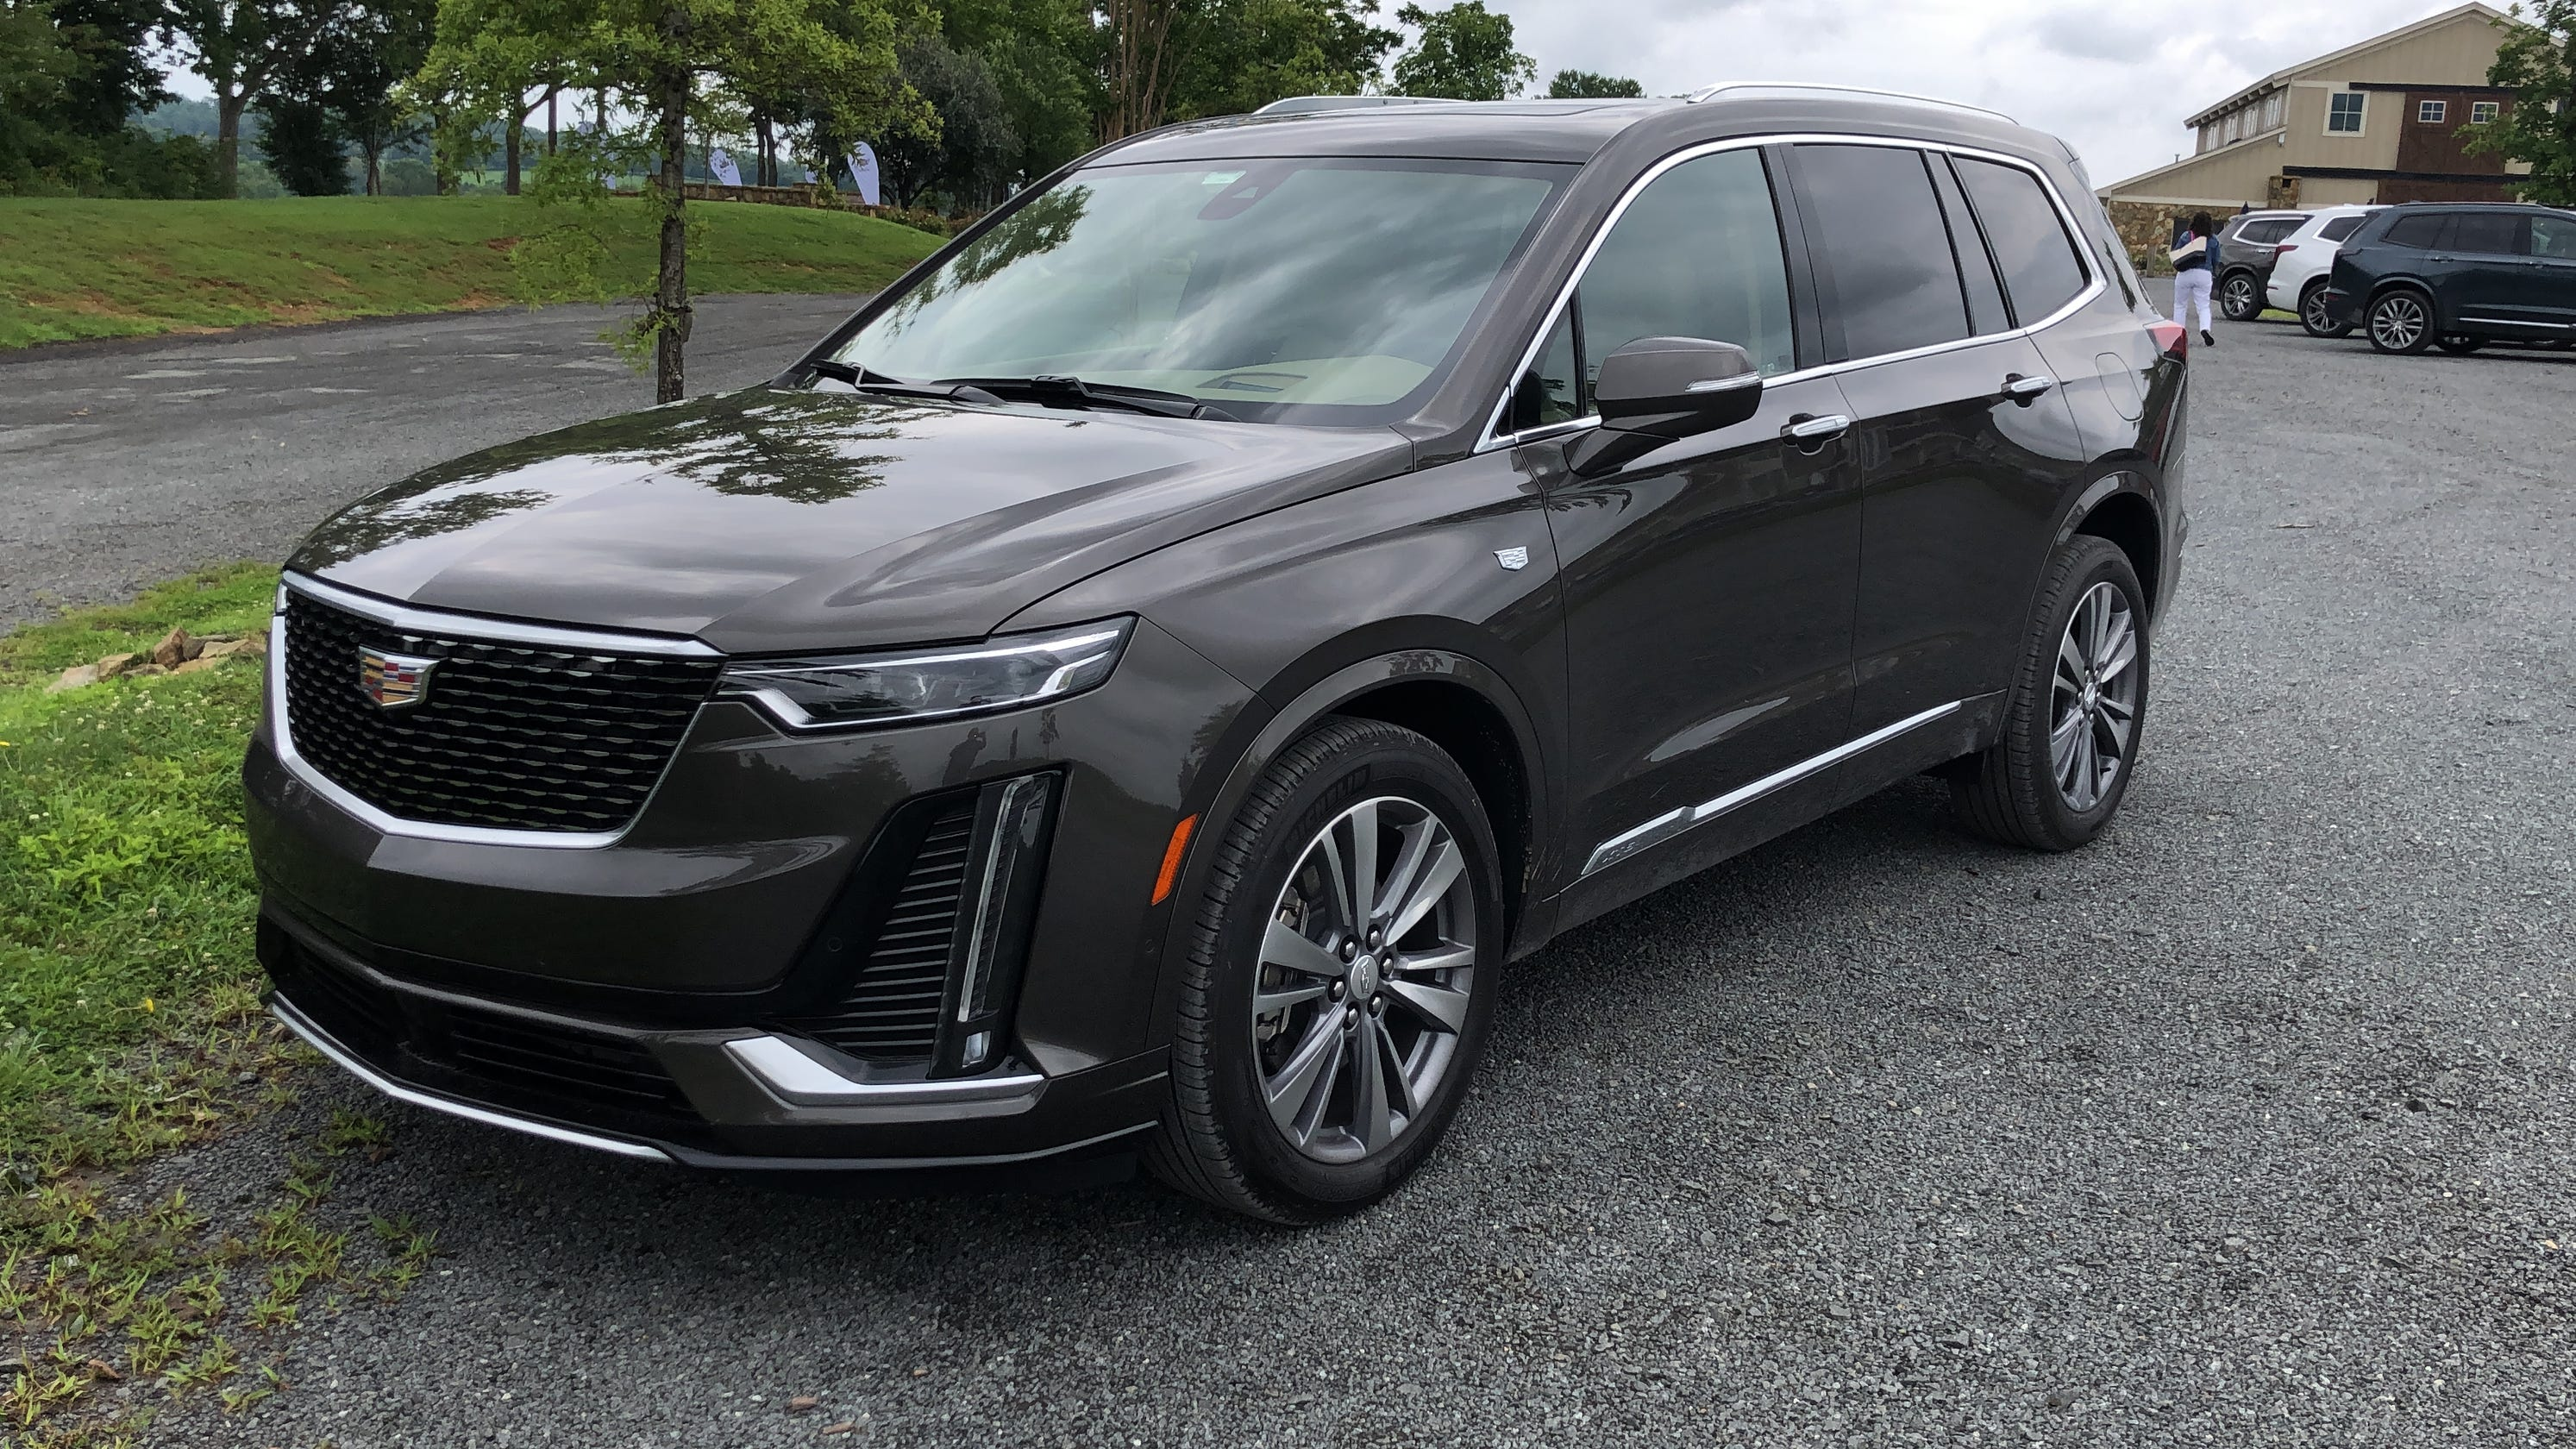 2020 Cadillac XT6 review: 3-row SUV tackles luxury leaders